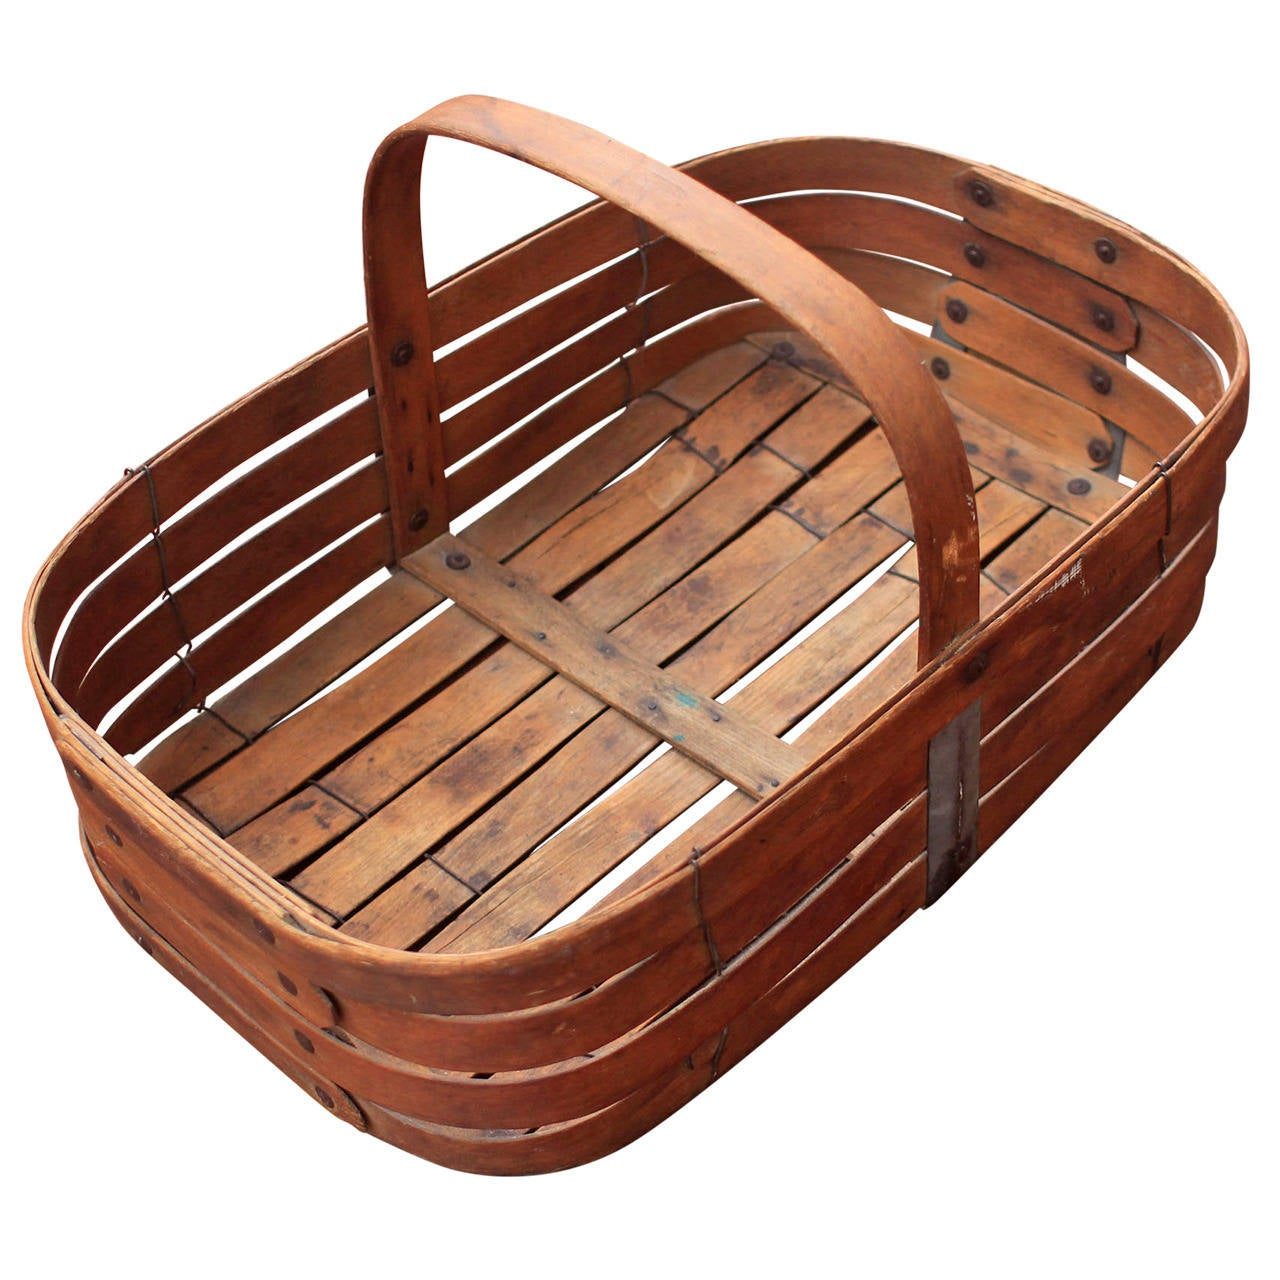 You searched for: wood basket! Etsy is the home to thousands of handmade, vintage, and one-of-a-kind products and gifts related to your search. No matter what you're looking for or where you are in the world, our global marketplace of sellers can help you find unique and affordable options. Let's get started!